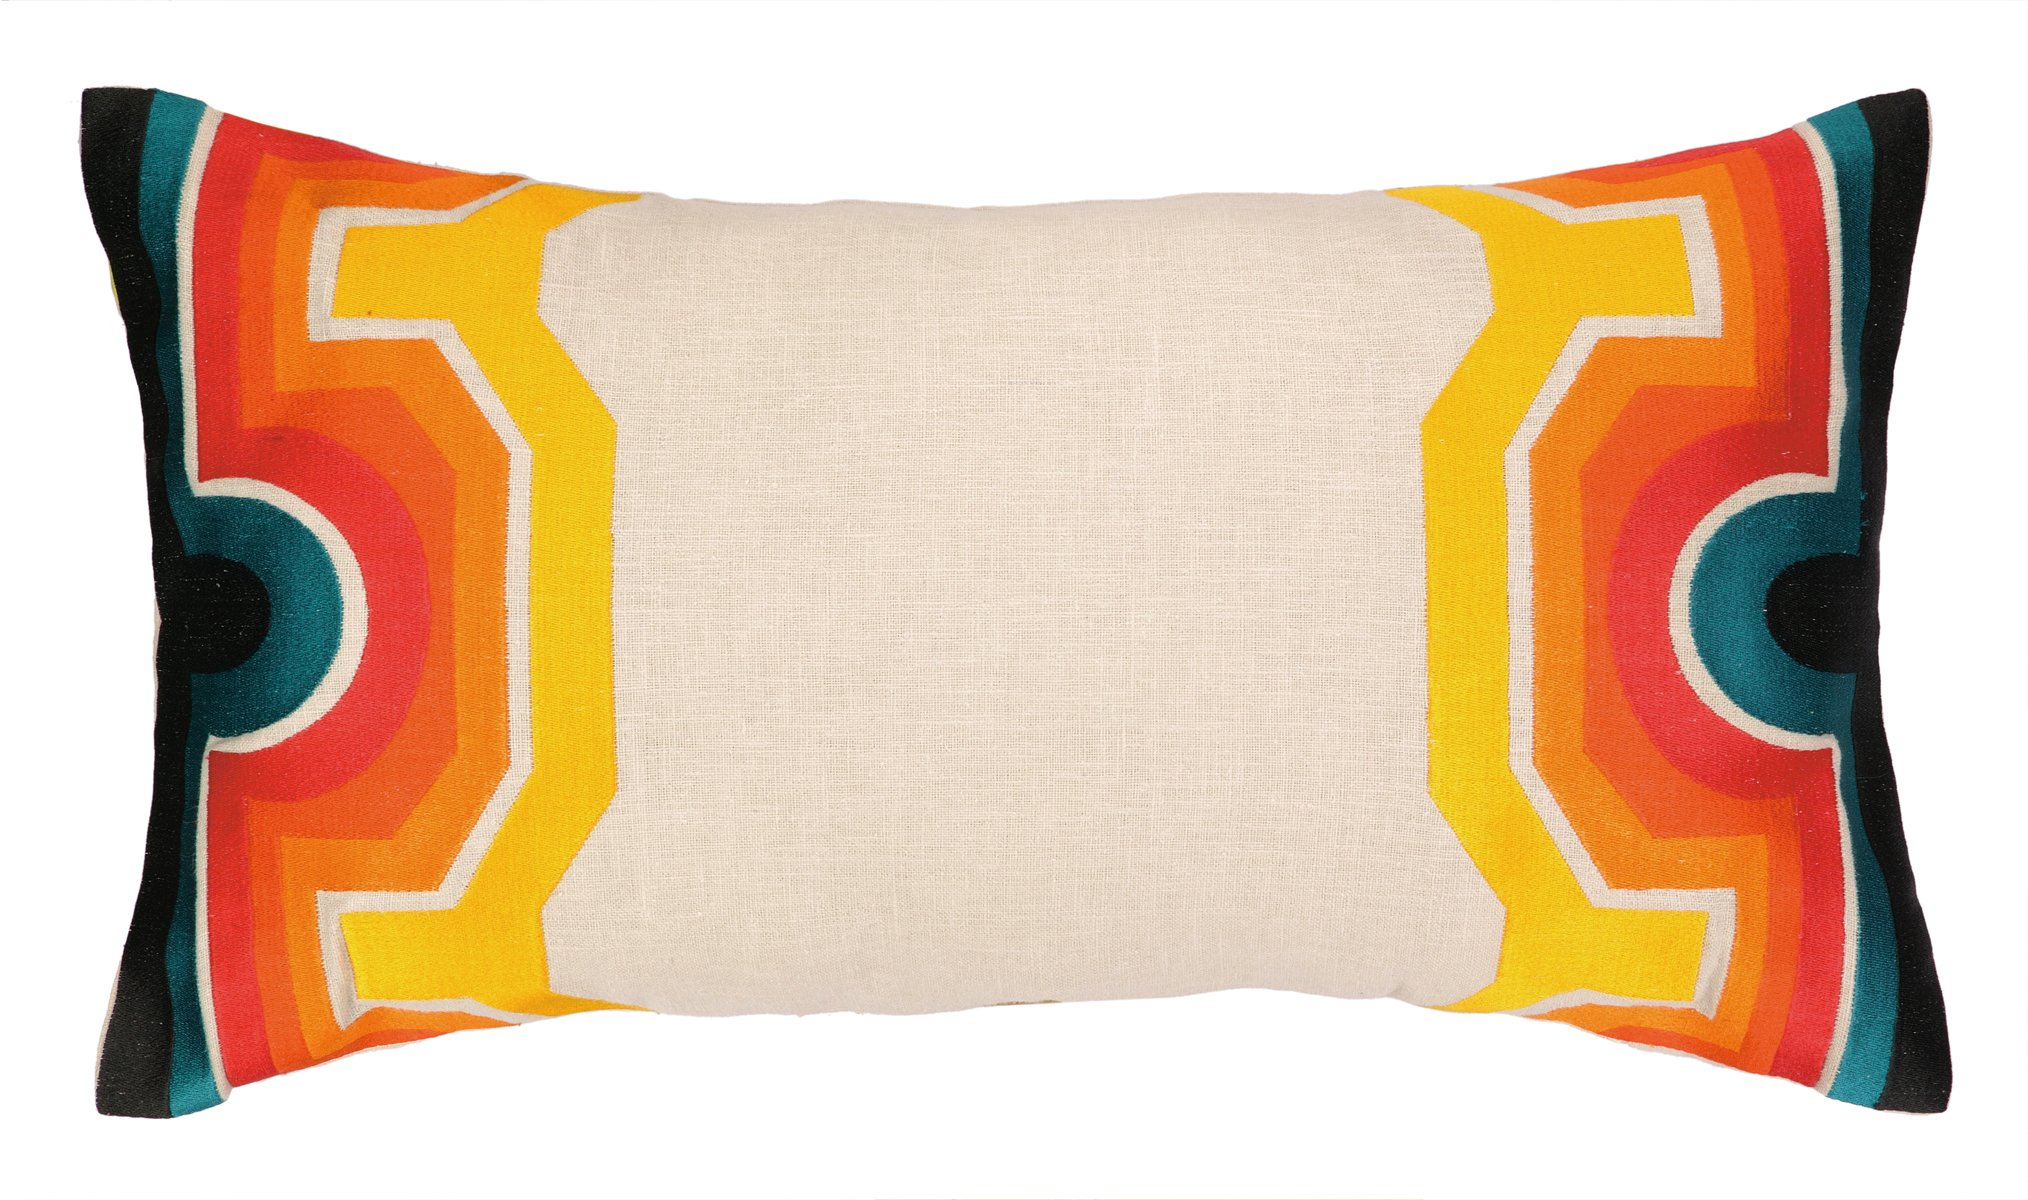 Trina Turk Residential Linen Embroidered Lumbar Pillow, Arcata, Blue/Orange by Trina Turk